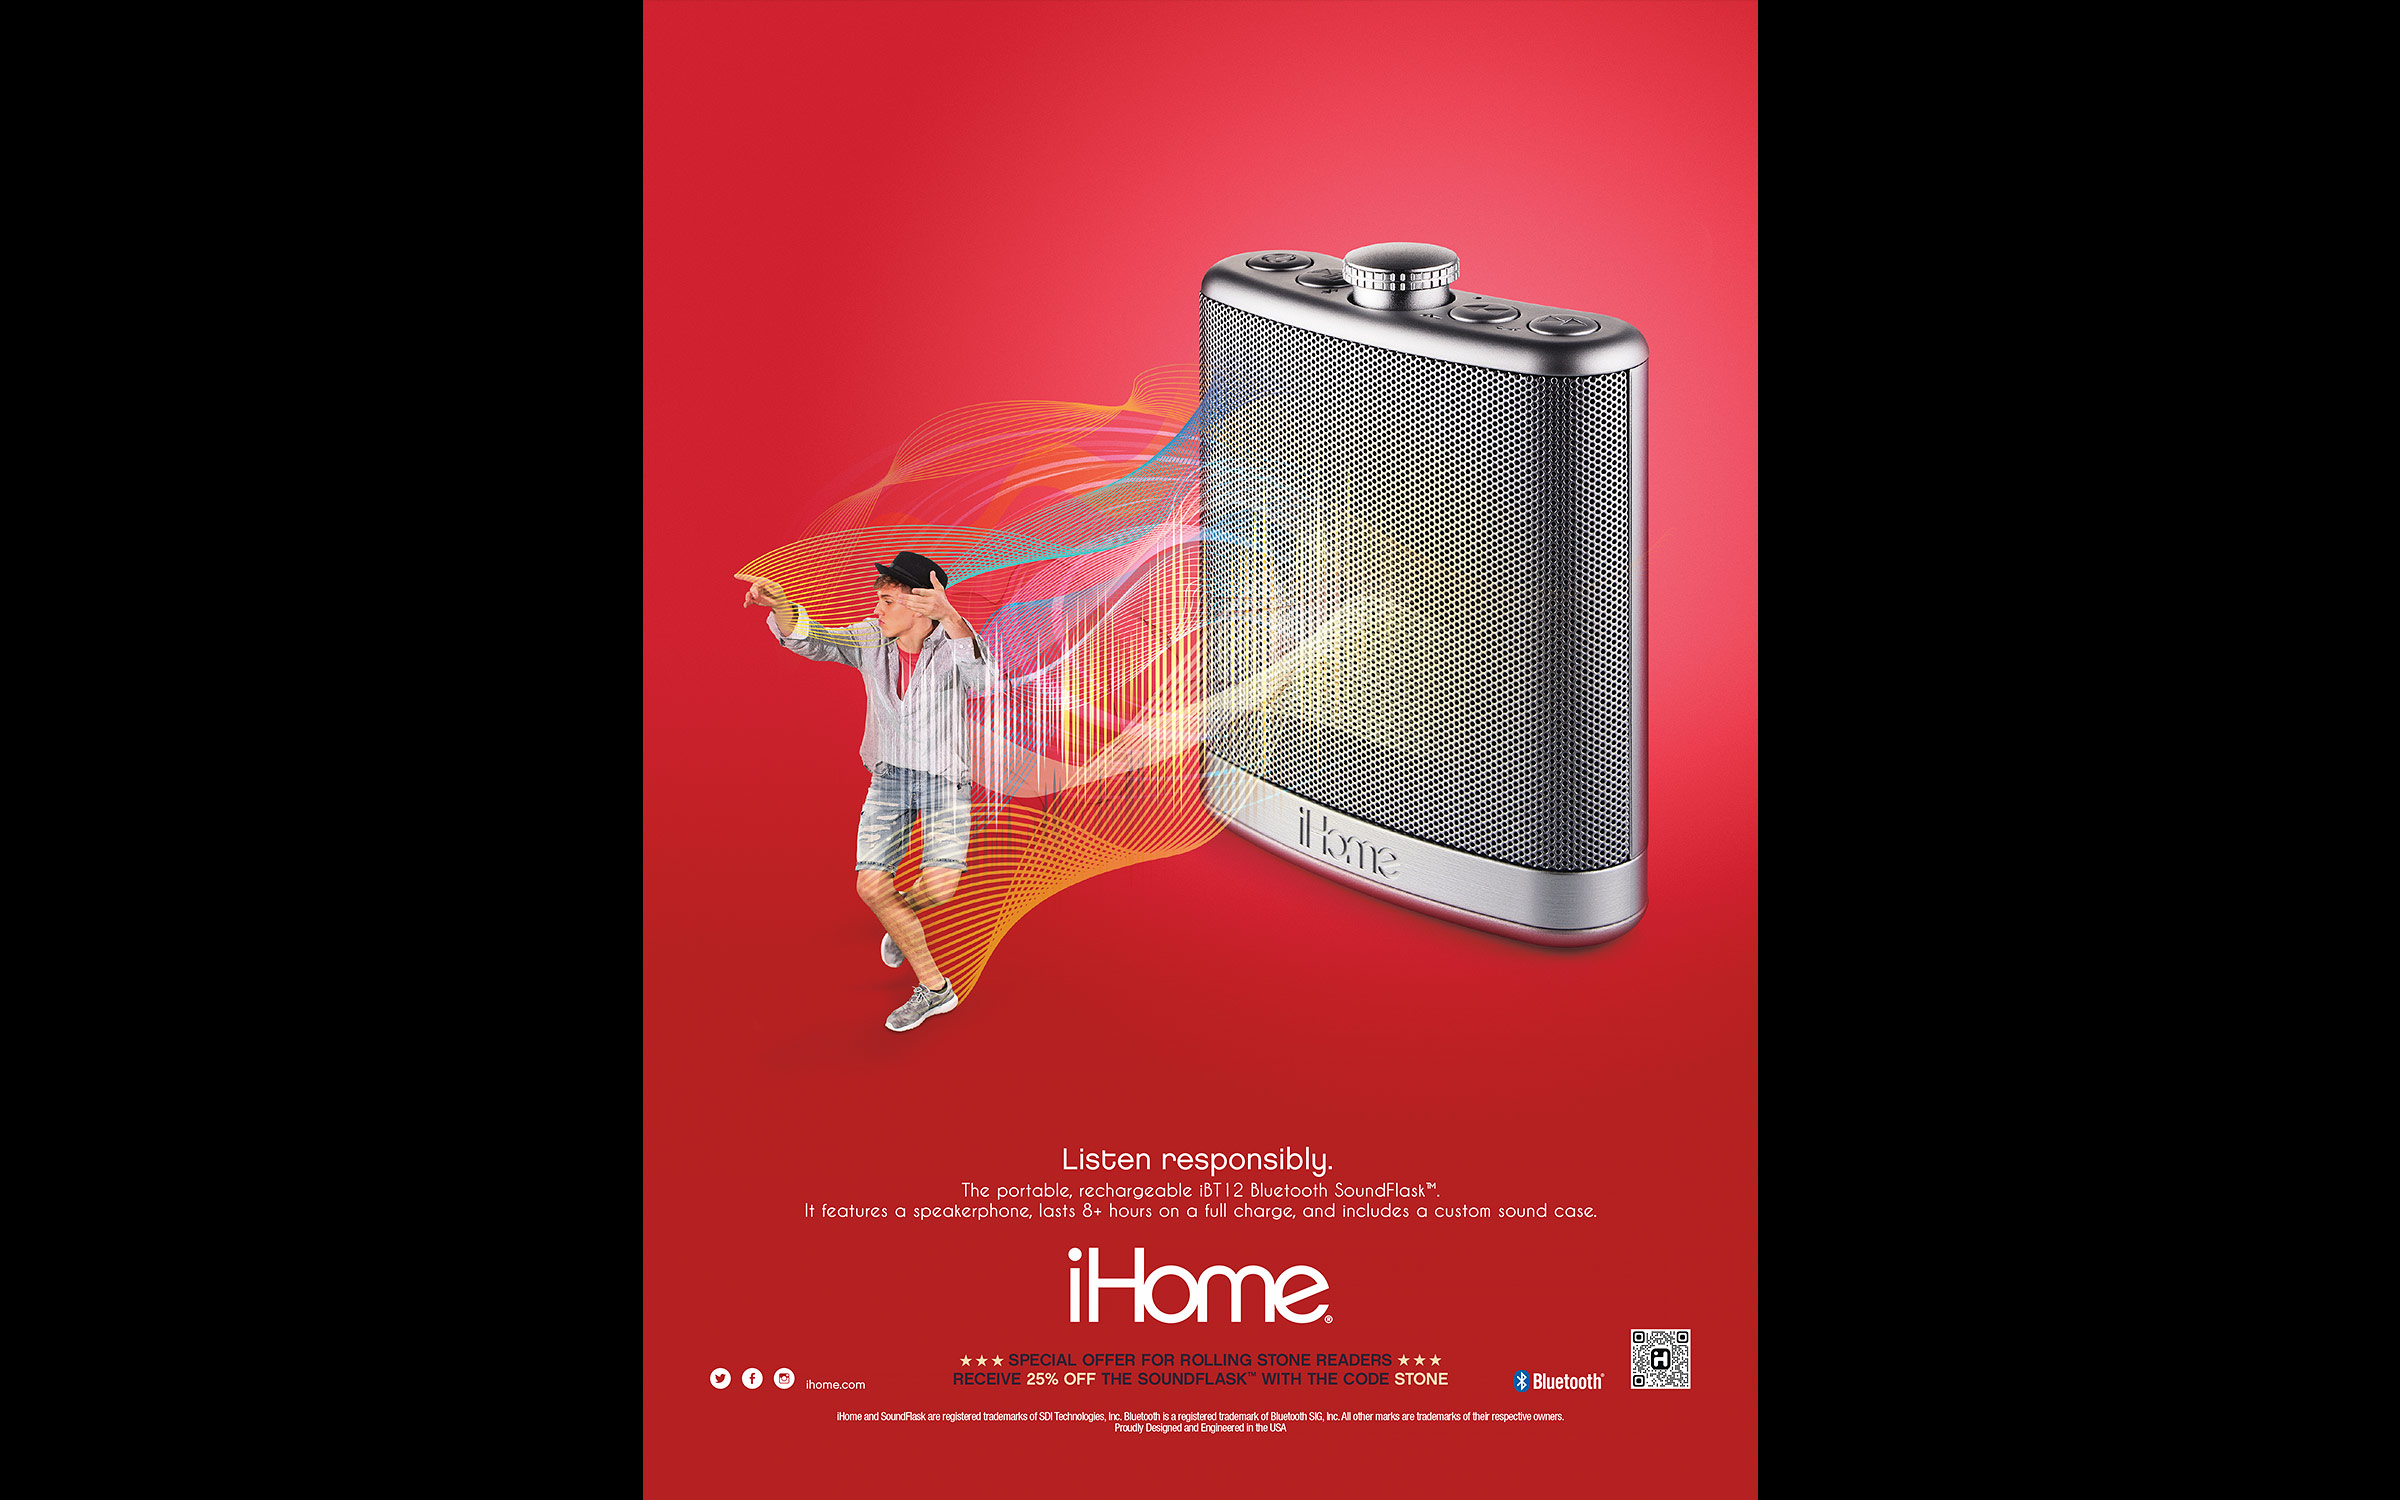 Product and still life photography for iHome advertising campaign.